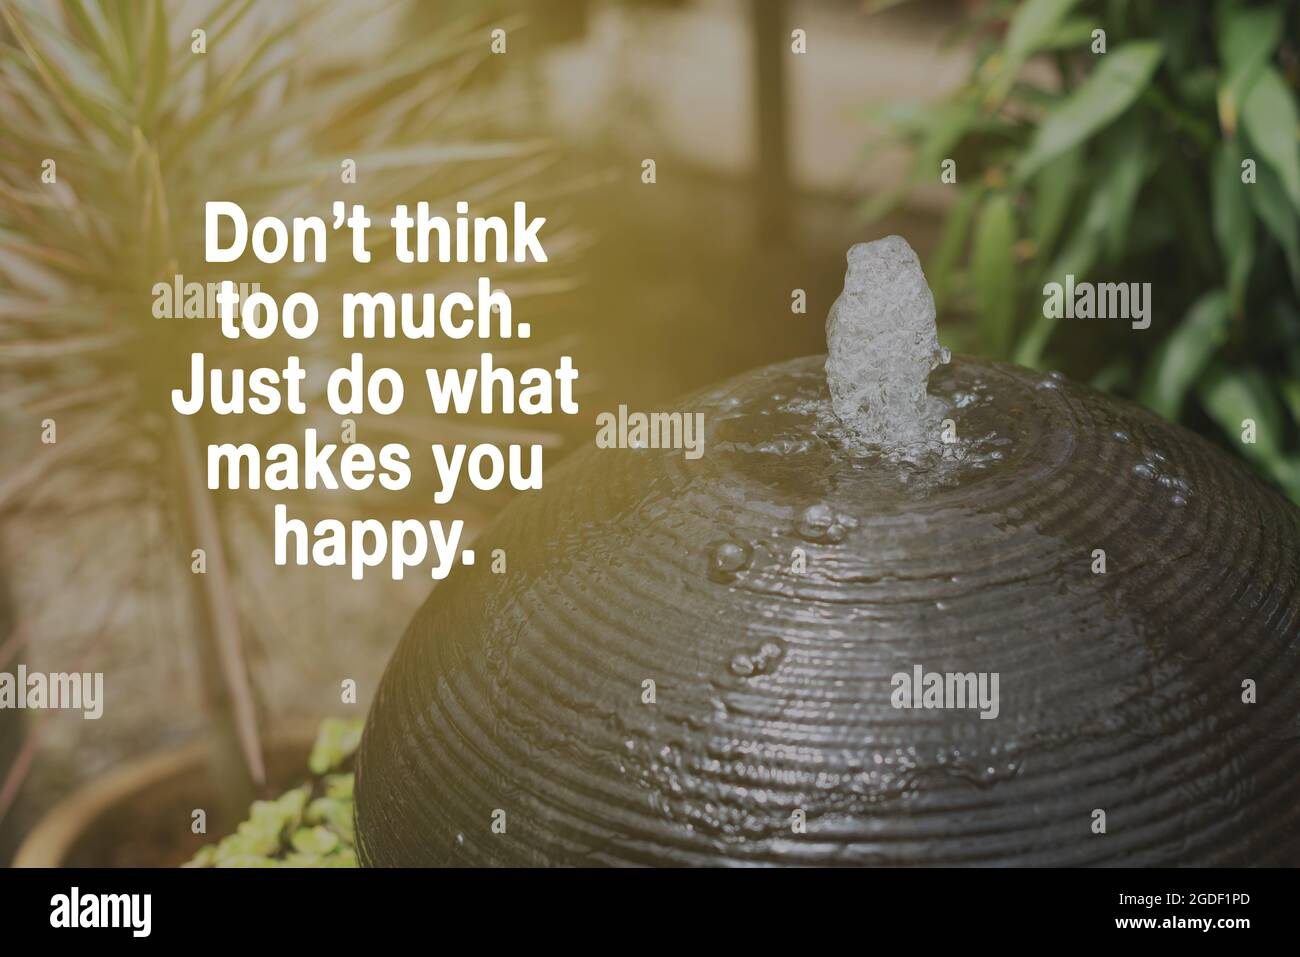 Meaningful Quotes High Resolution Stock Photography and Images   Alamy